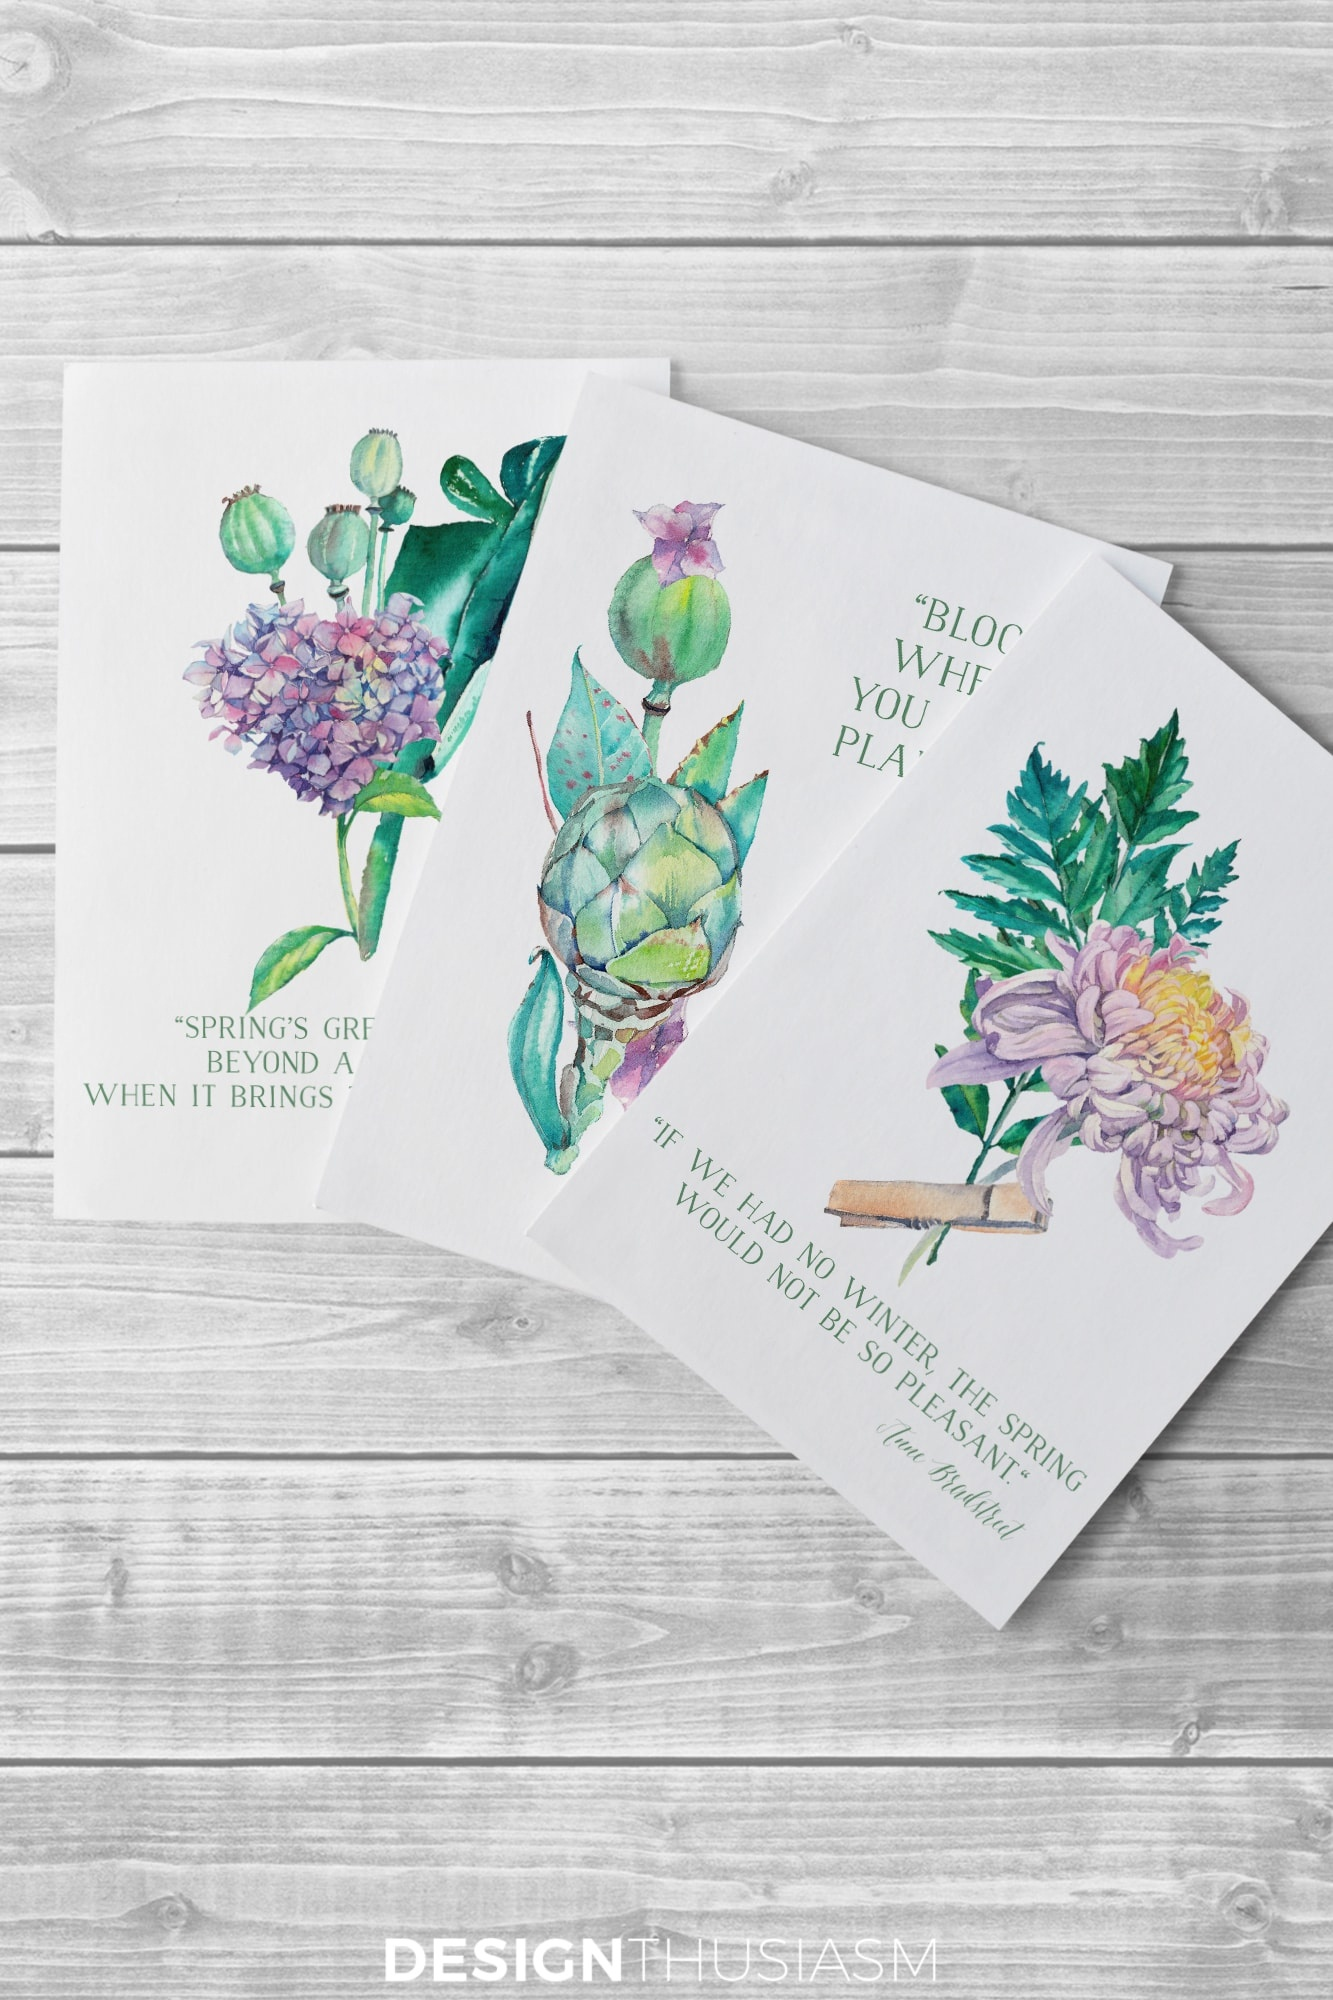 Free Printable Art For Spring: Watercolor Flowers For Diy Wall Decor - Free Watercolor Printables